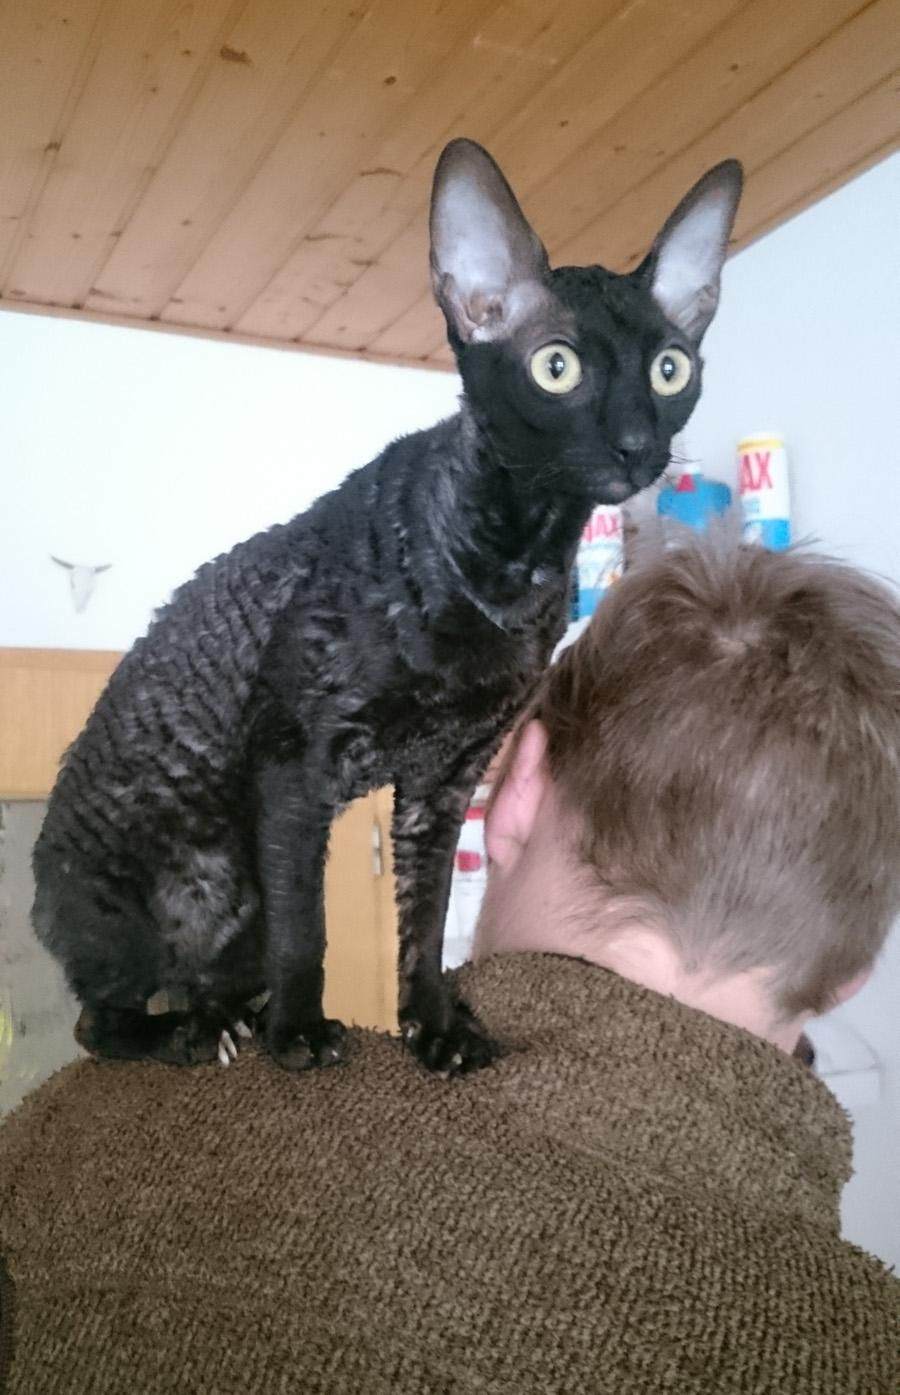 Cat Parrot My Young Cornish Rex Cat Yolandi Likes To Sit On Shoulders Yes This Cat Looks A Little Different To The Average Cat B Cornish Rex Cat Rex Cat Cats